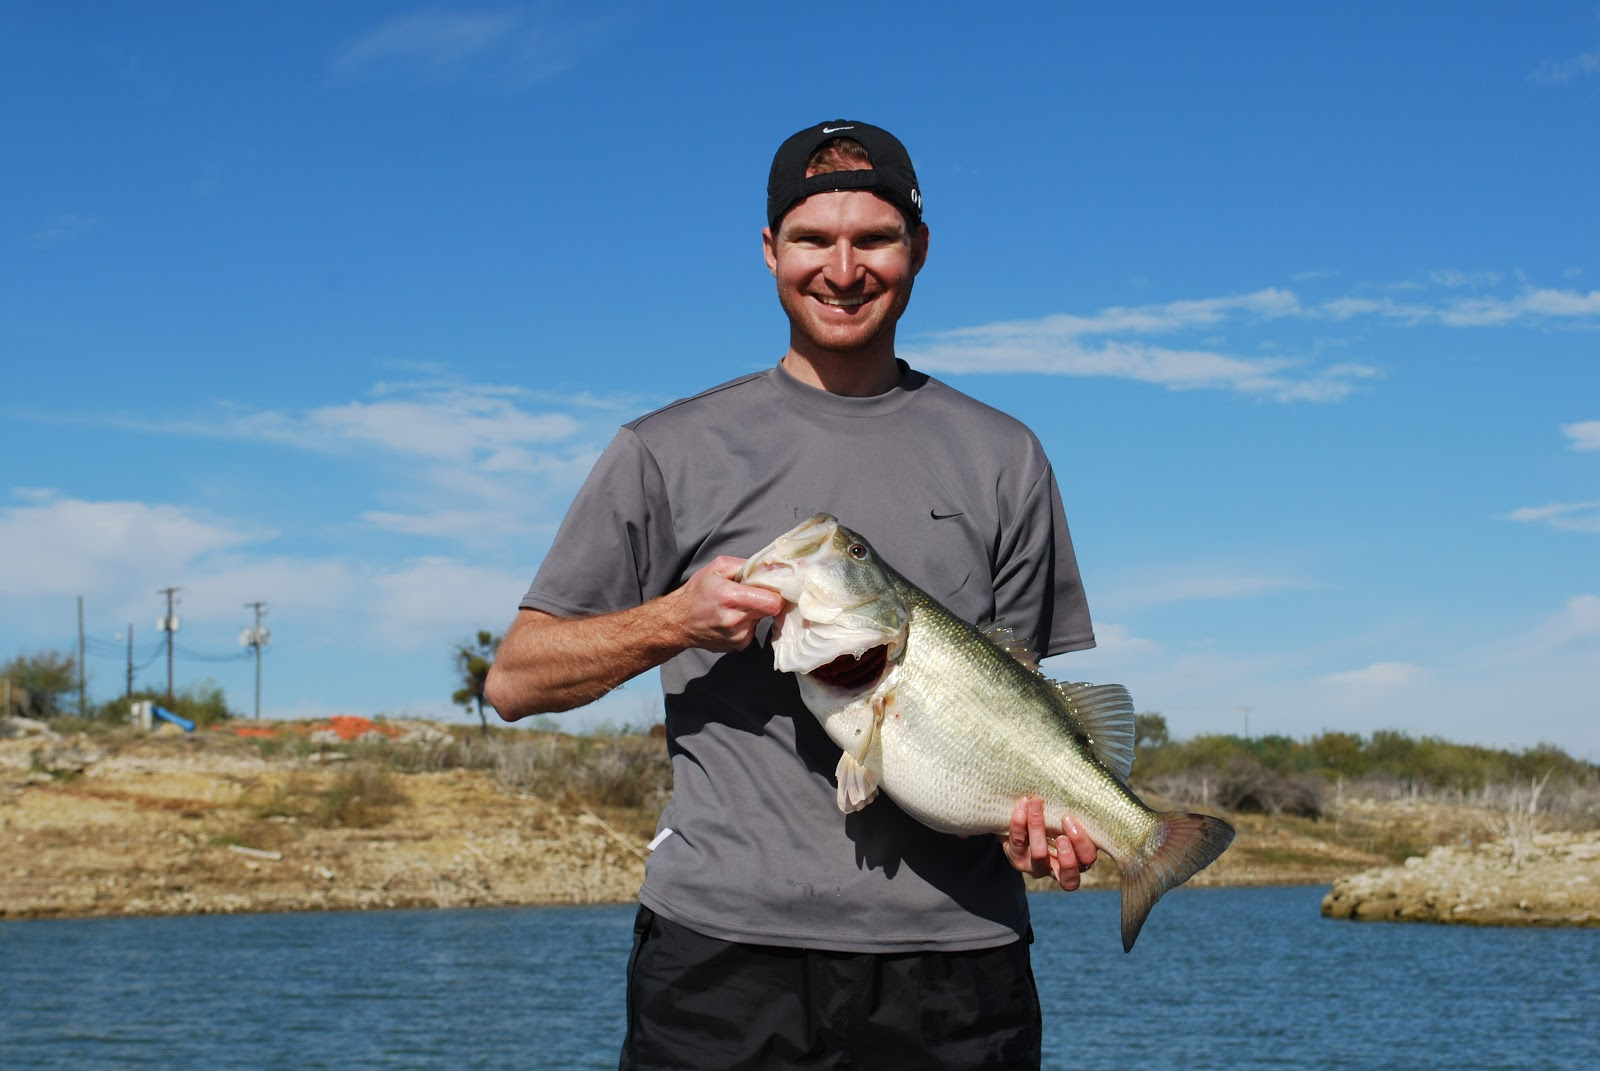 Falcon lake tx the best bass lake in the country it for Best bass fishing lakes in texas